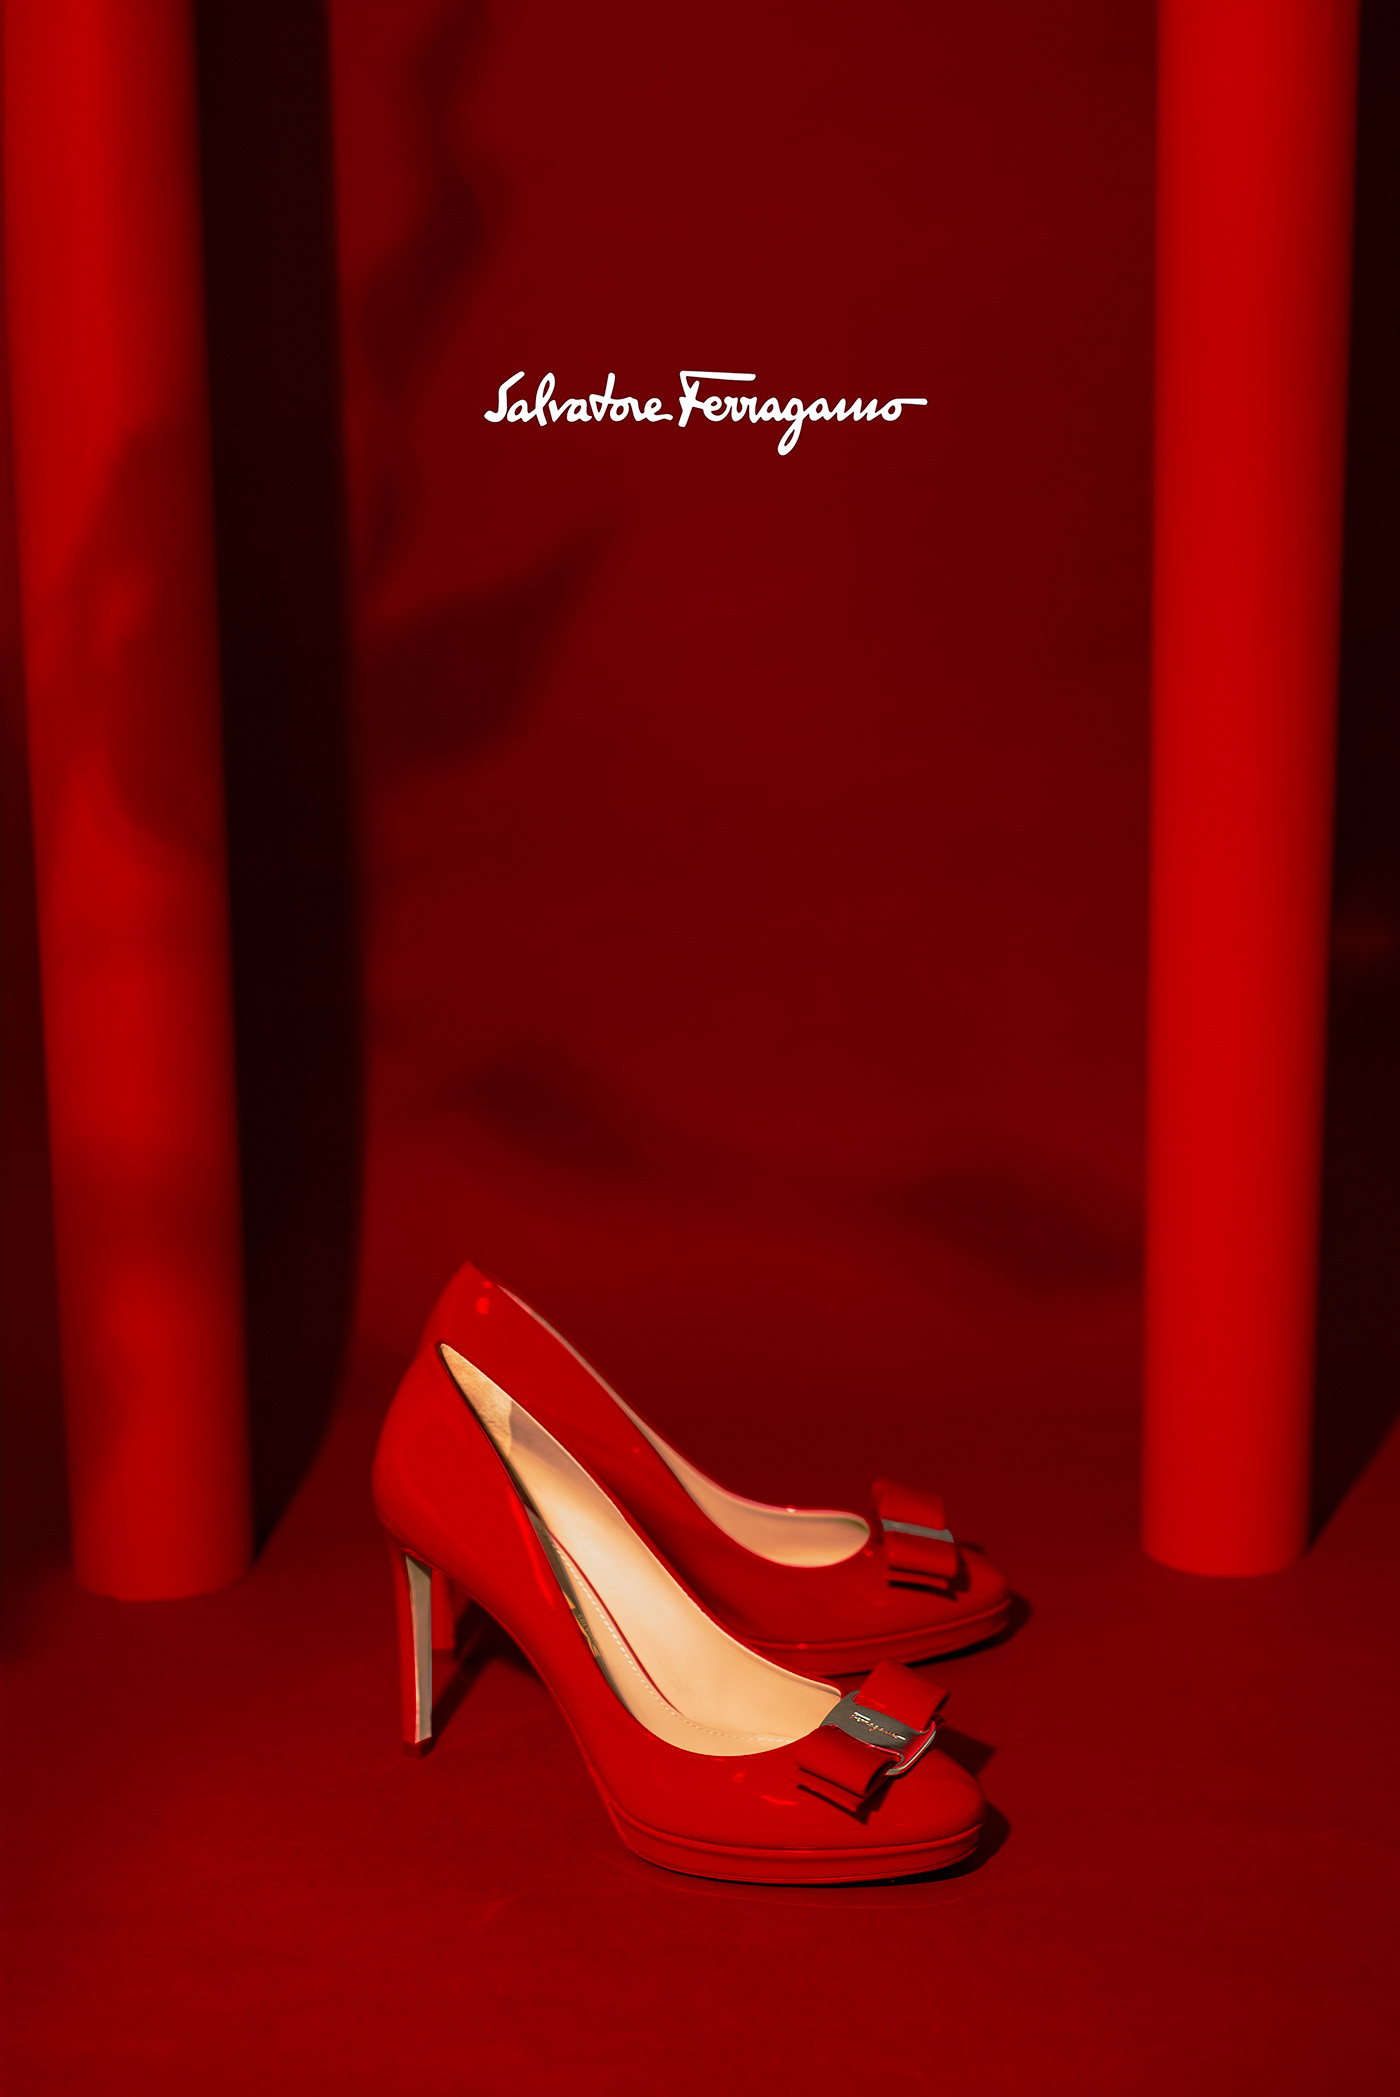 ad art direction  Fashion  Ferragamo luxury Photography  product red retouch styling